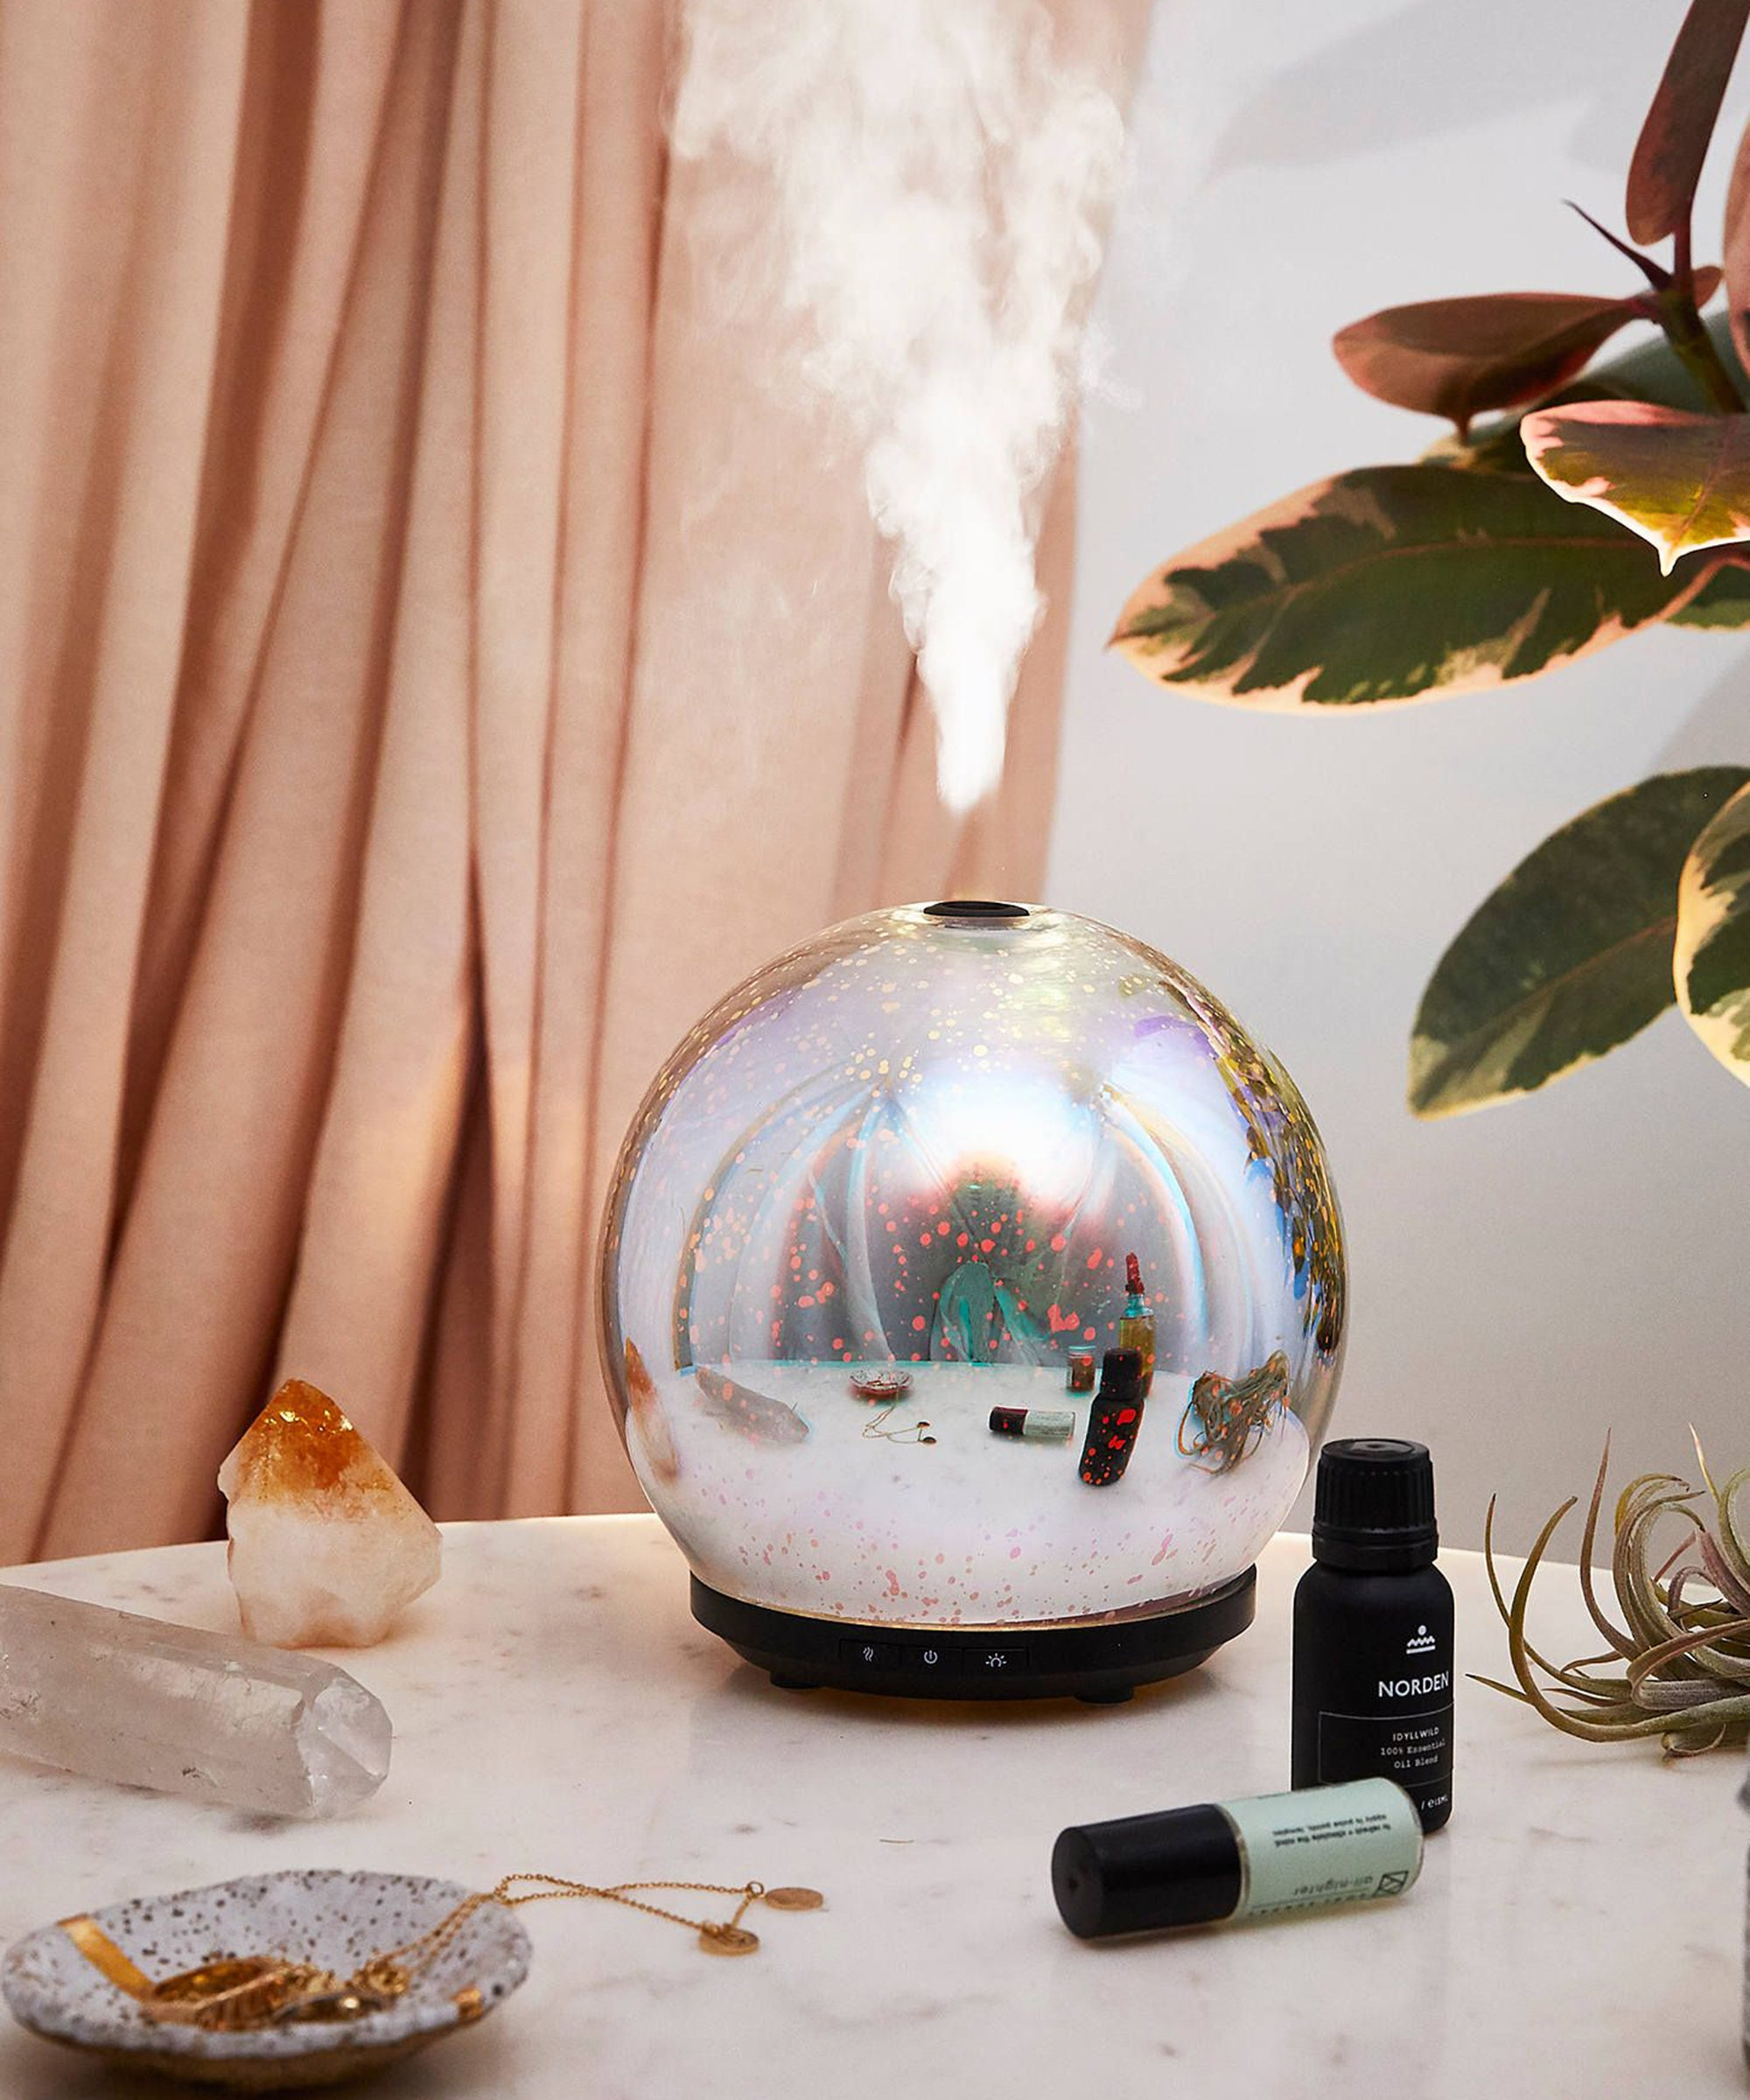 11 Mini Humidifiers That Will Moisturize And Beautify Your Desk